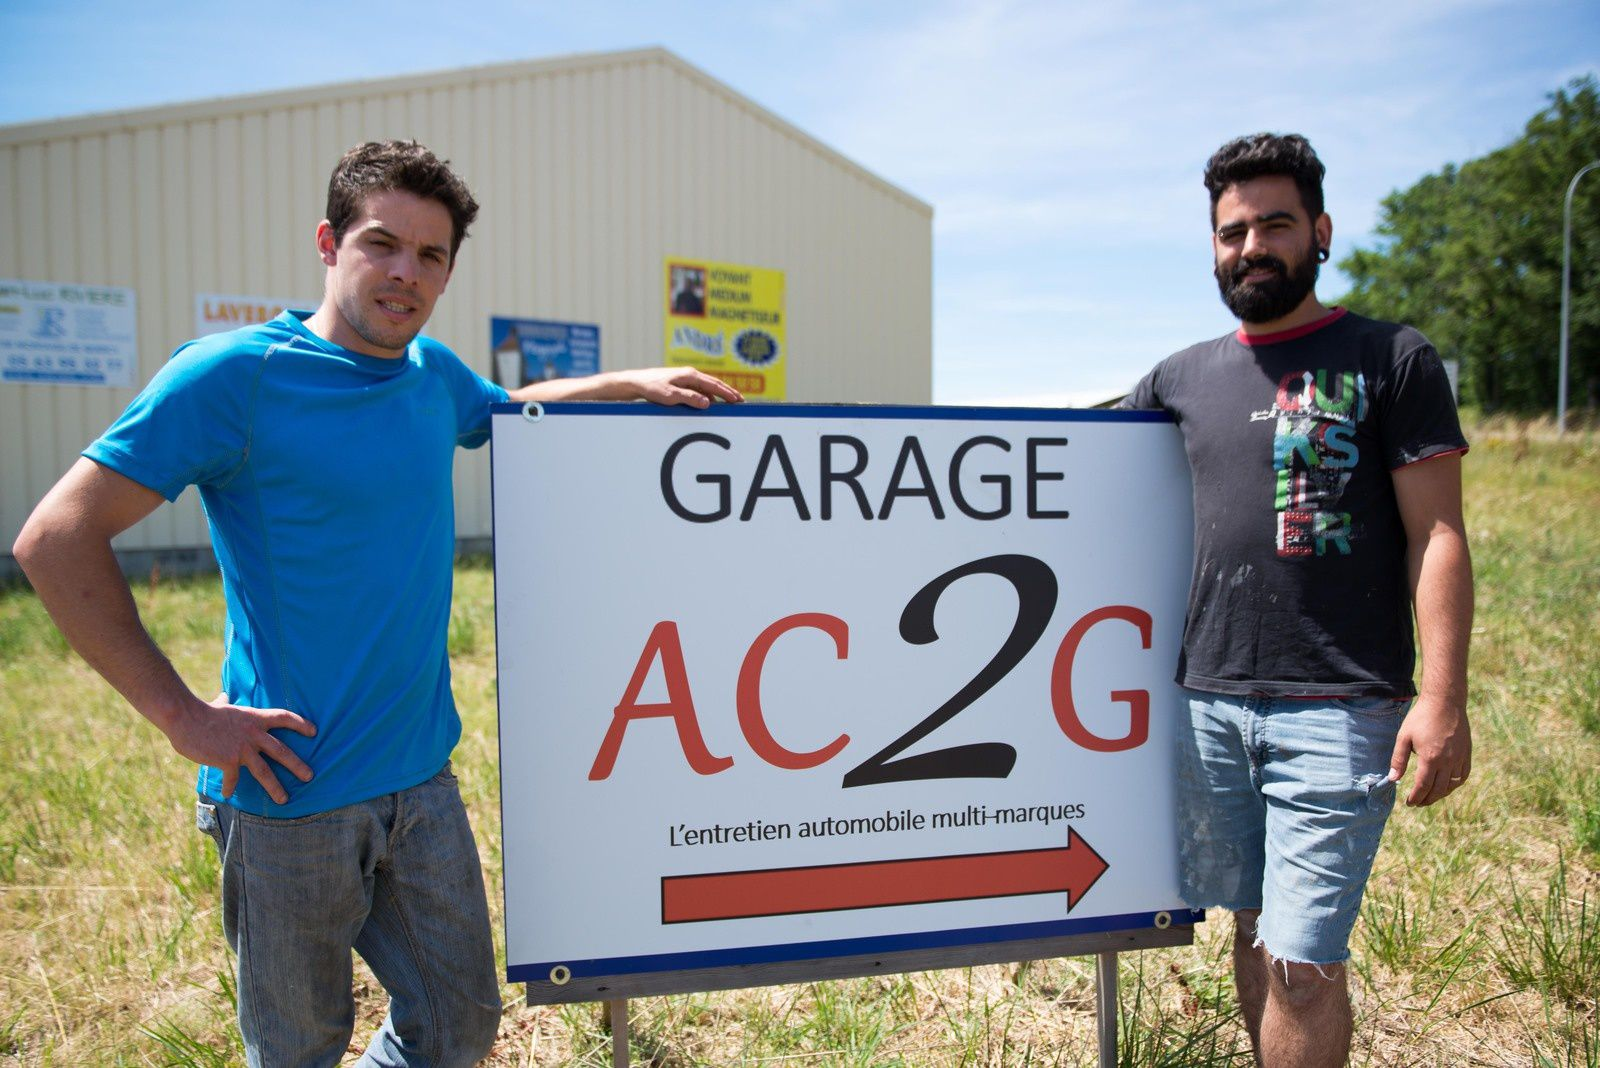 Tournon d 39 agenais un nouveau garage saint roc for Garage des platanes